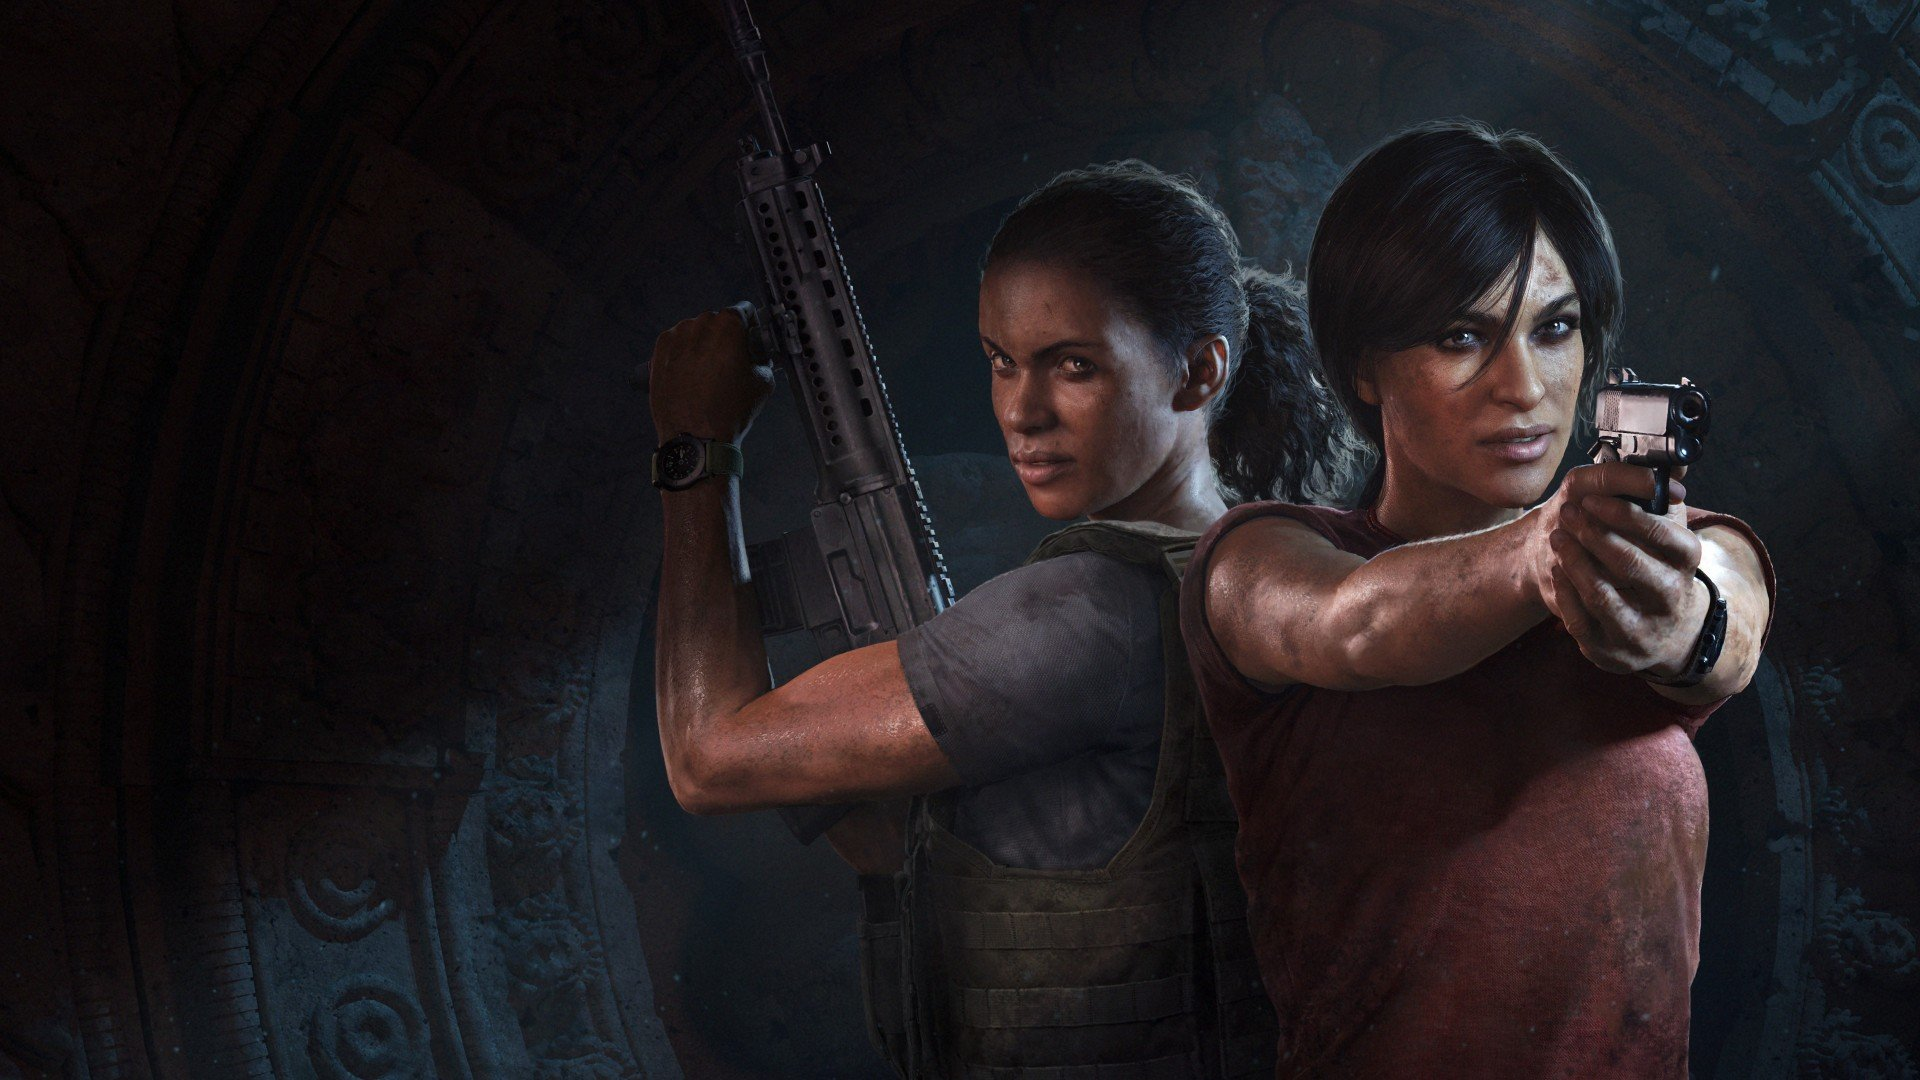 Cloe and Nadine - Uncharted: The Lost Legacy